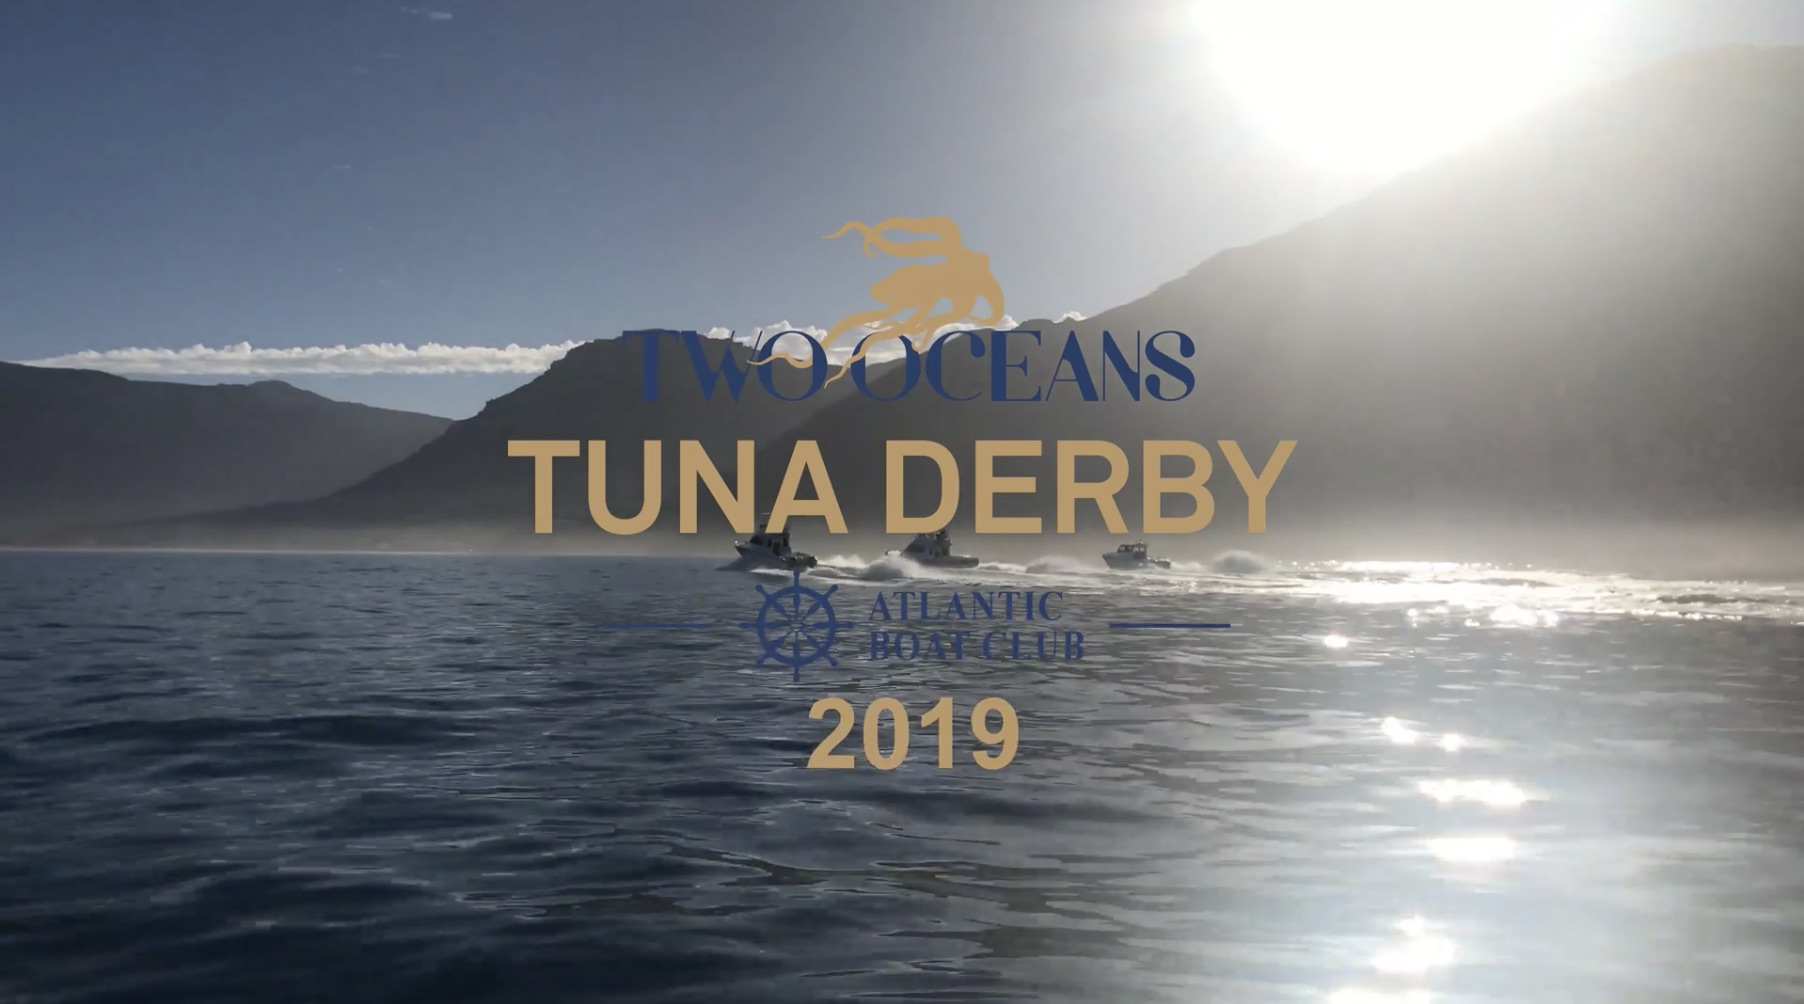 two oceans tuna derby 1